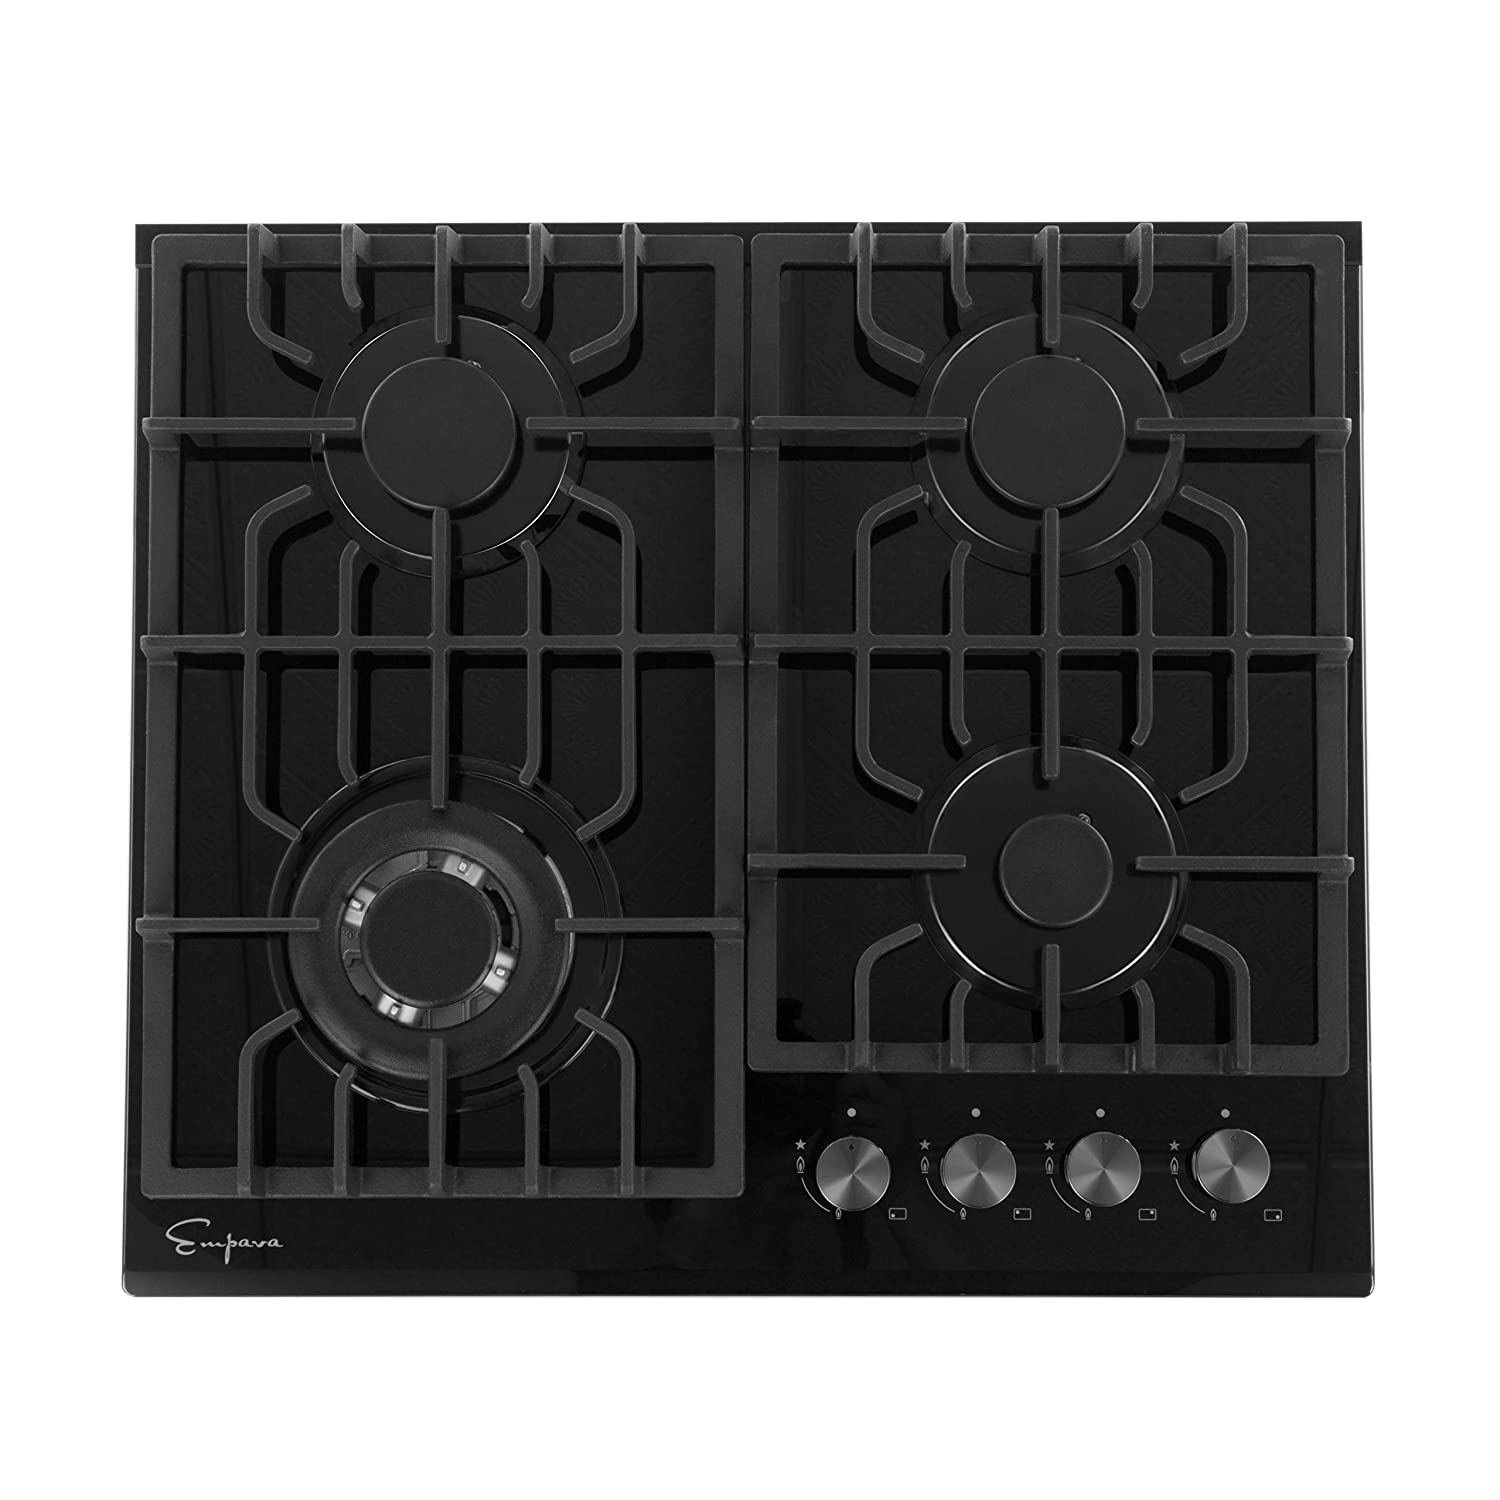 Empava EMPV-24GC902 Gas Stove Cooktop, 24 Inch